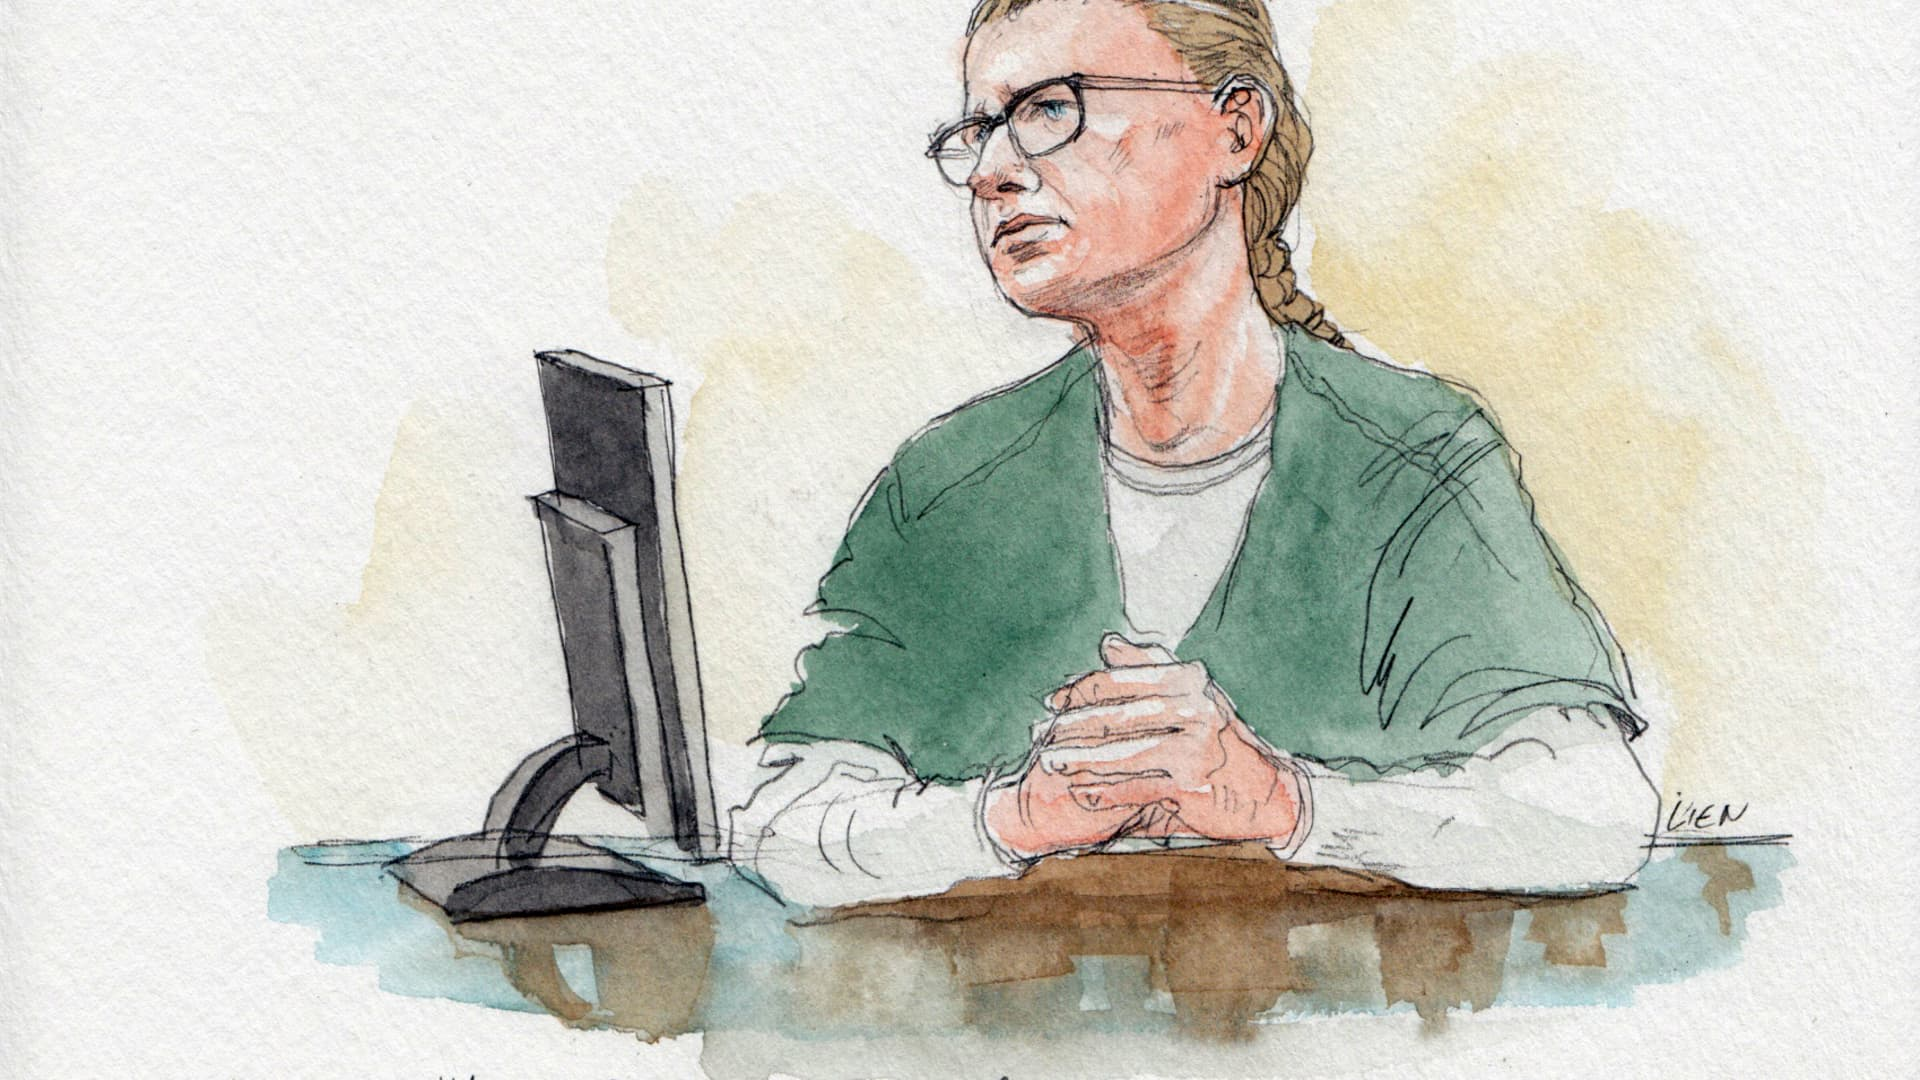 Sketches from the hearing at US District Court in DC for Maria Butina, September 10, 2018.